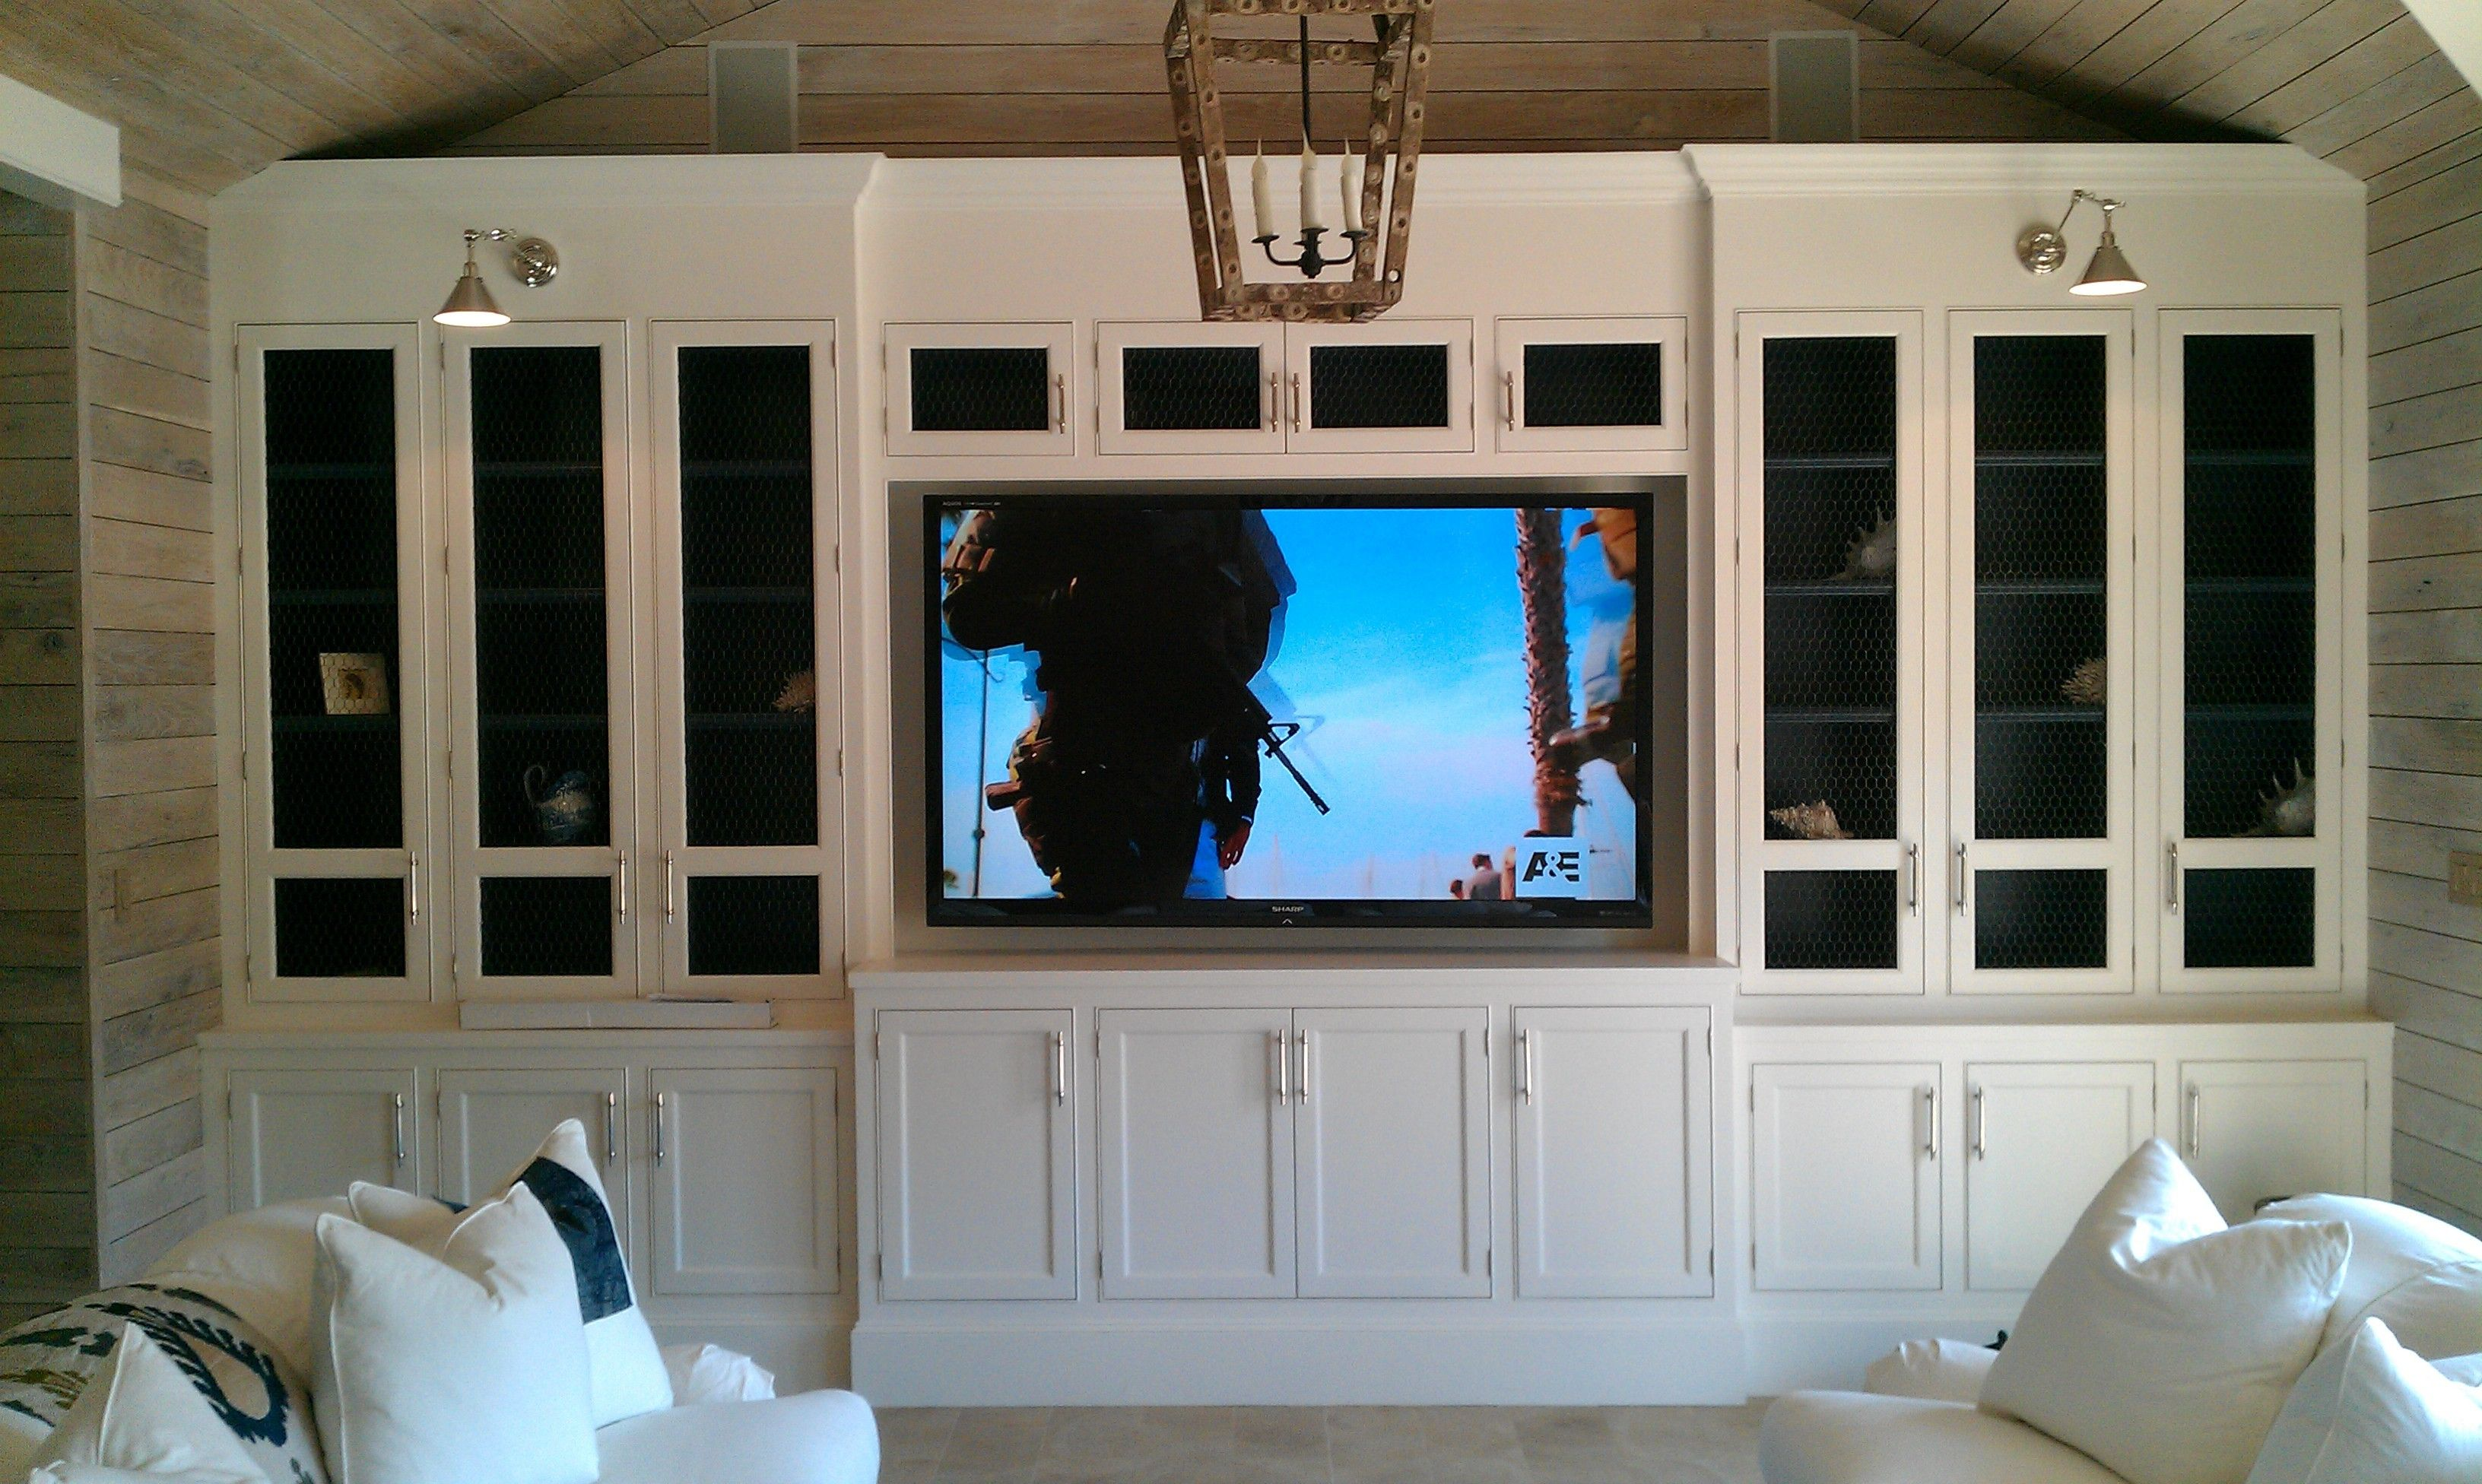 Hamptons Style Entertainment Unit Image Result For Hamptons Style Built In Wall Unit